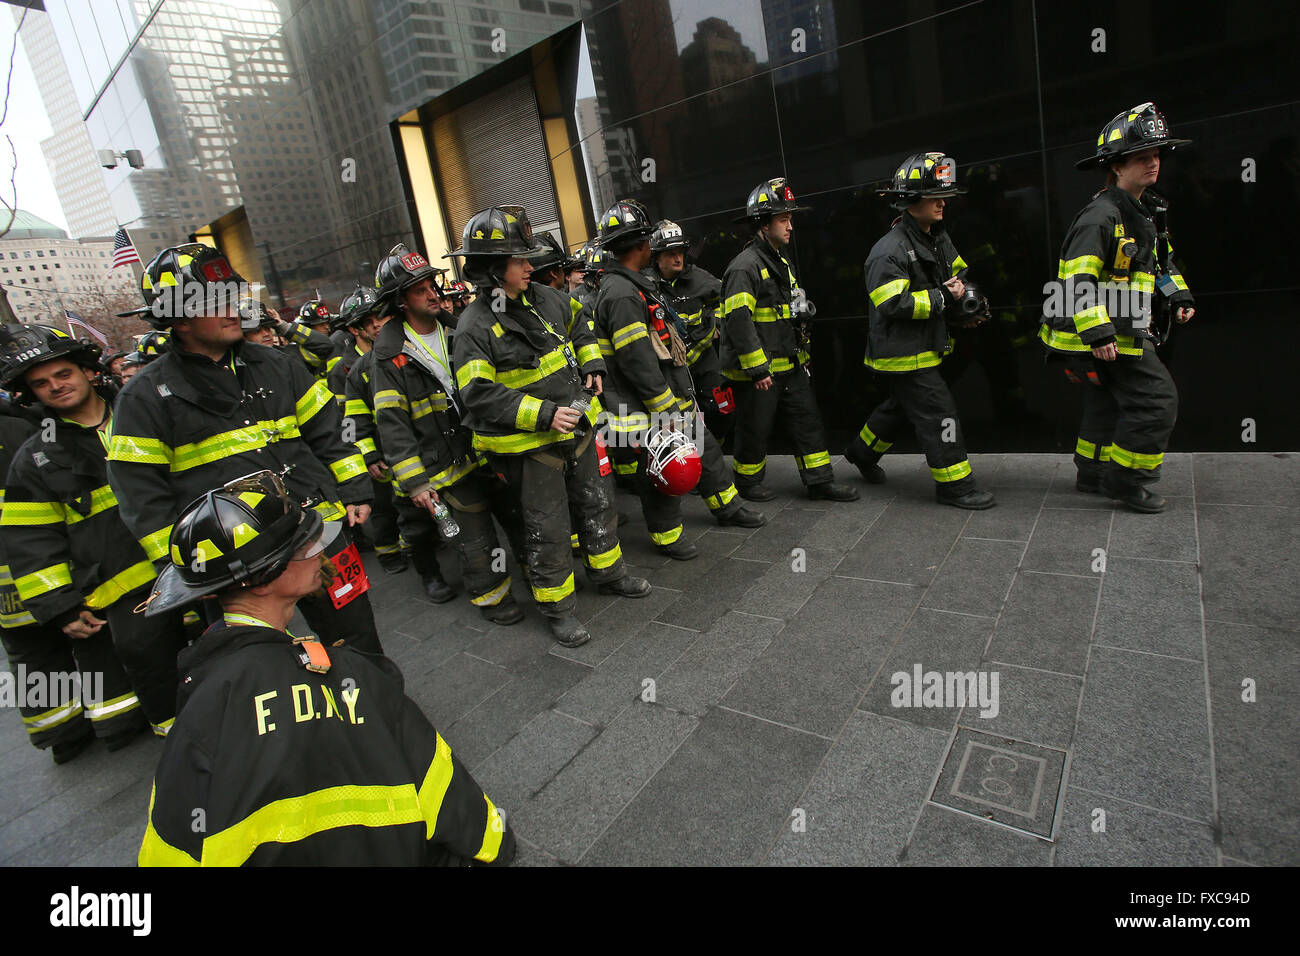 New York City, NY, USA. 13th Mar, 2016. FDNY firefighters begin their stair climb. 343 Firefighters from across - Stock Image